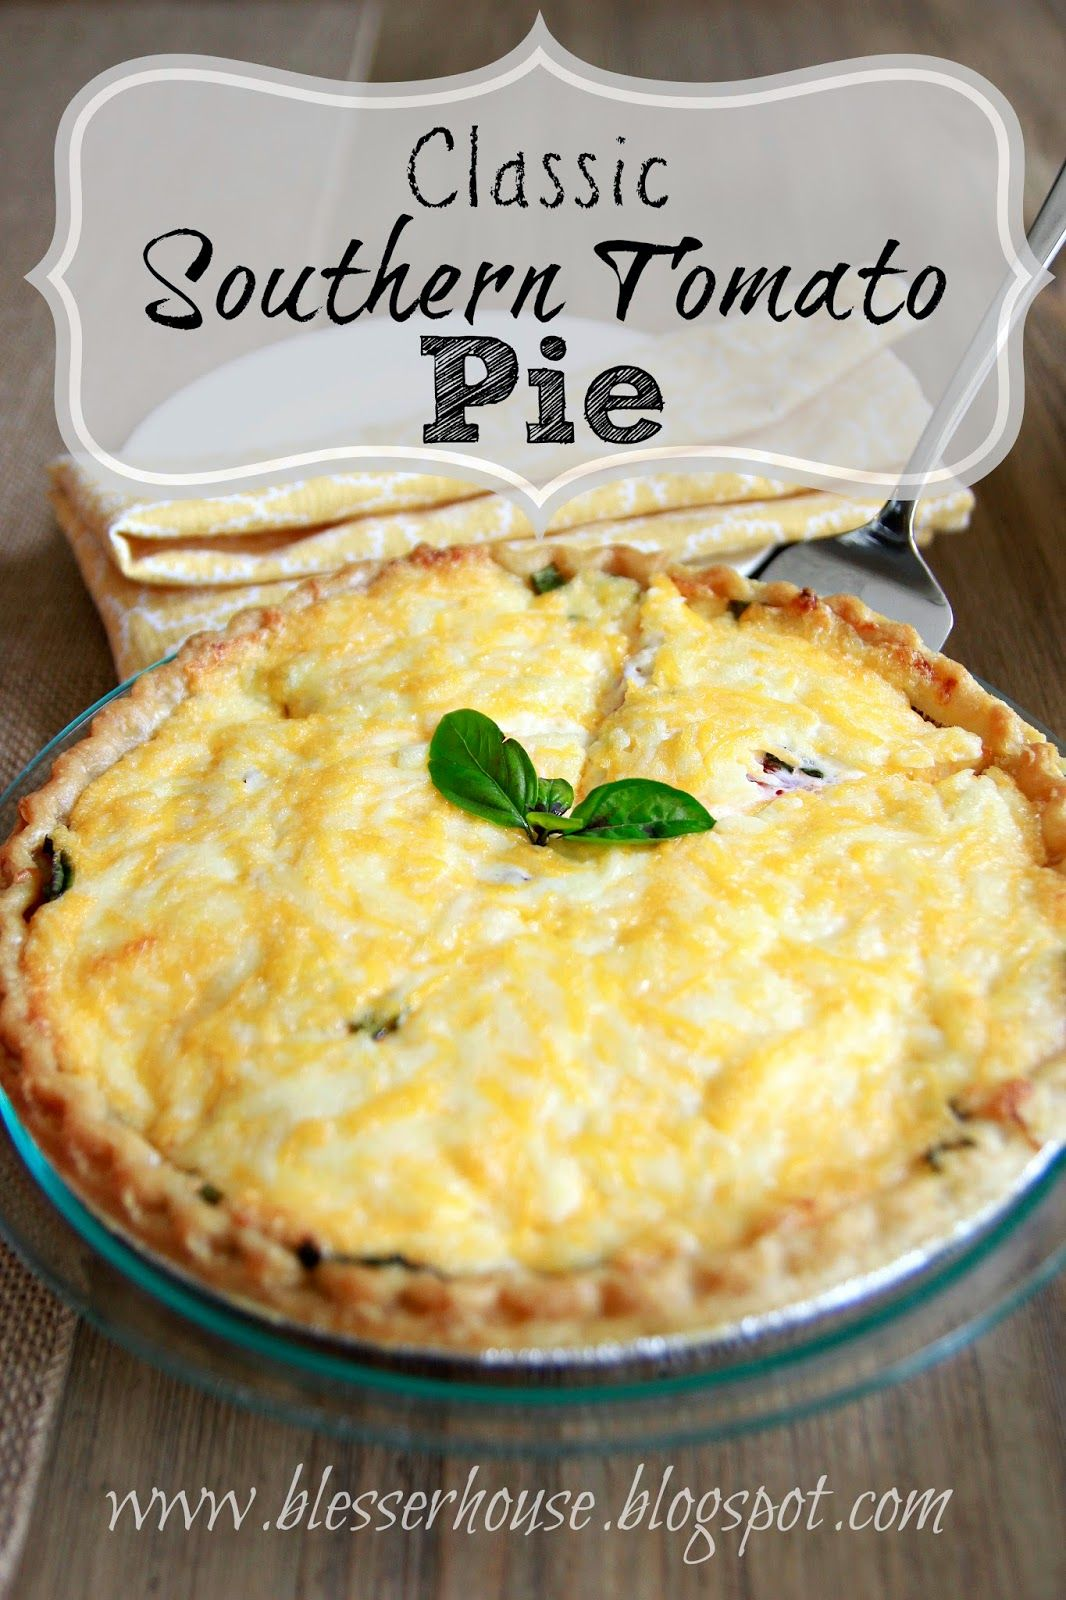 Classic Southern Tomato Pie #sweetpie